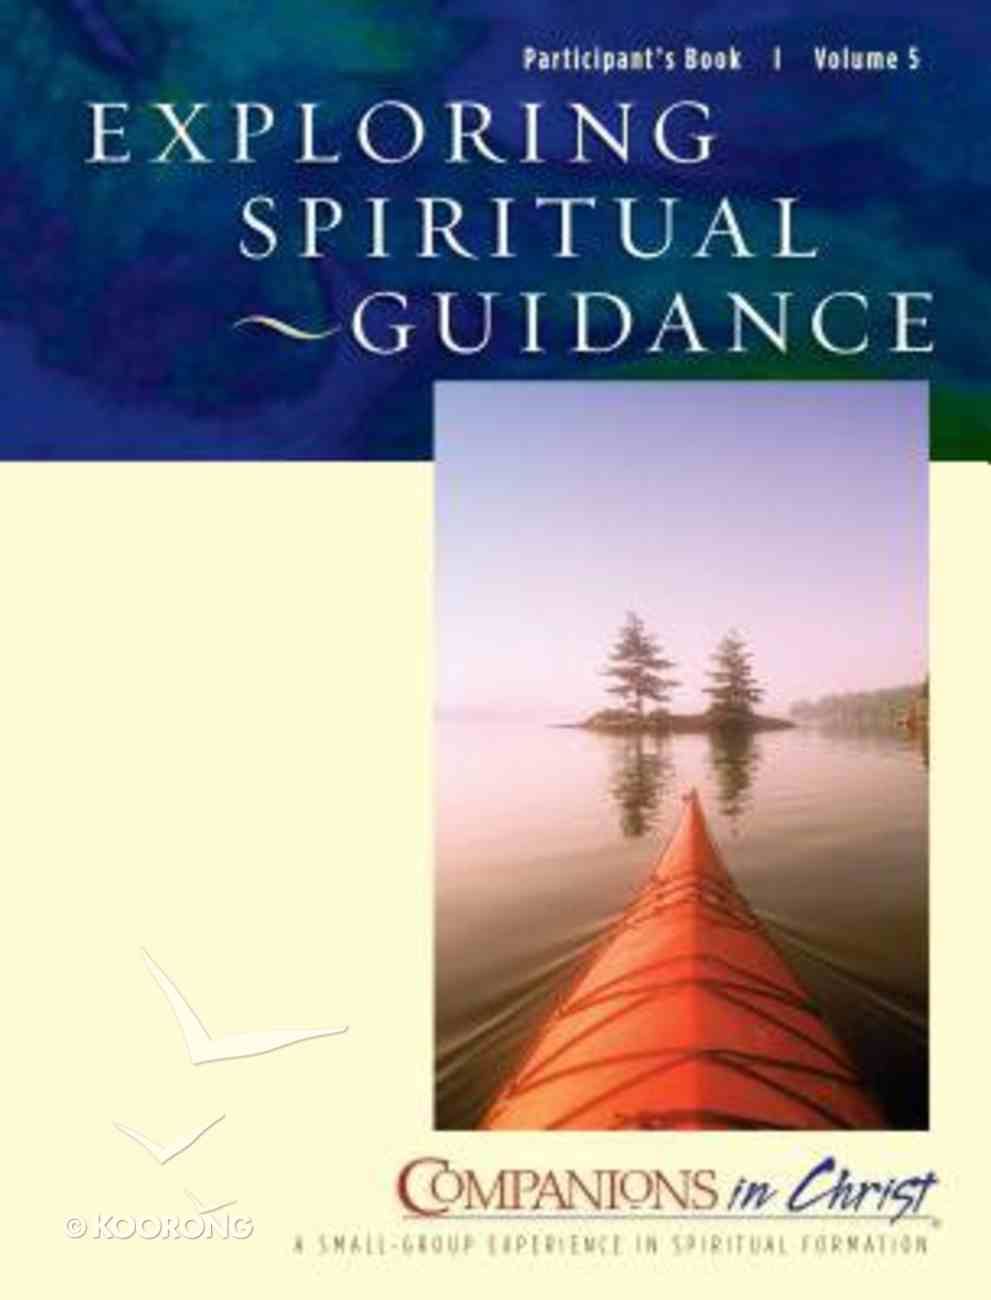 Exploring Spiritual Guidance (Participant's Book) (Companions In Christ Series) Paperback